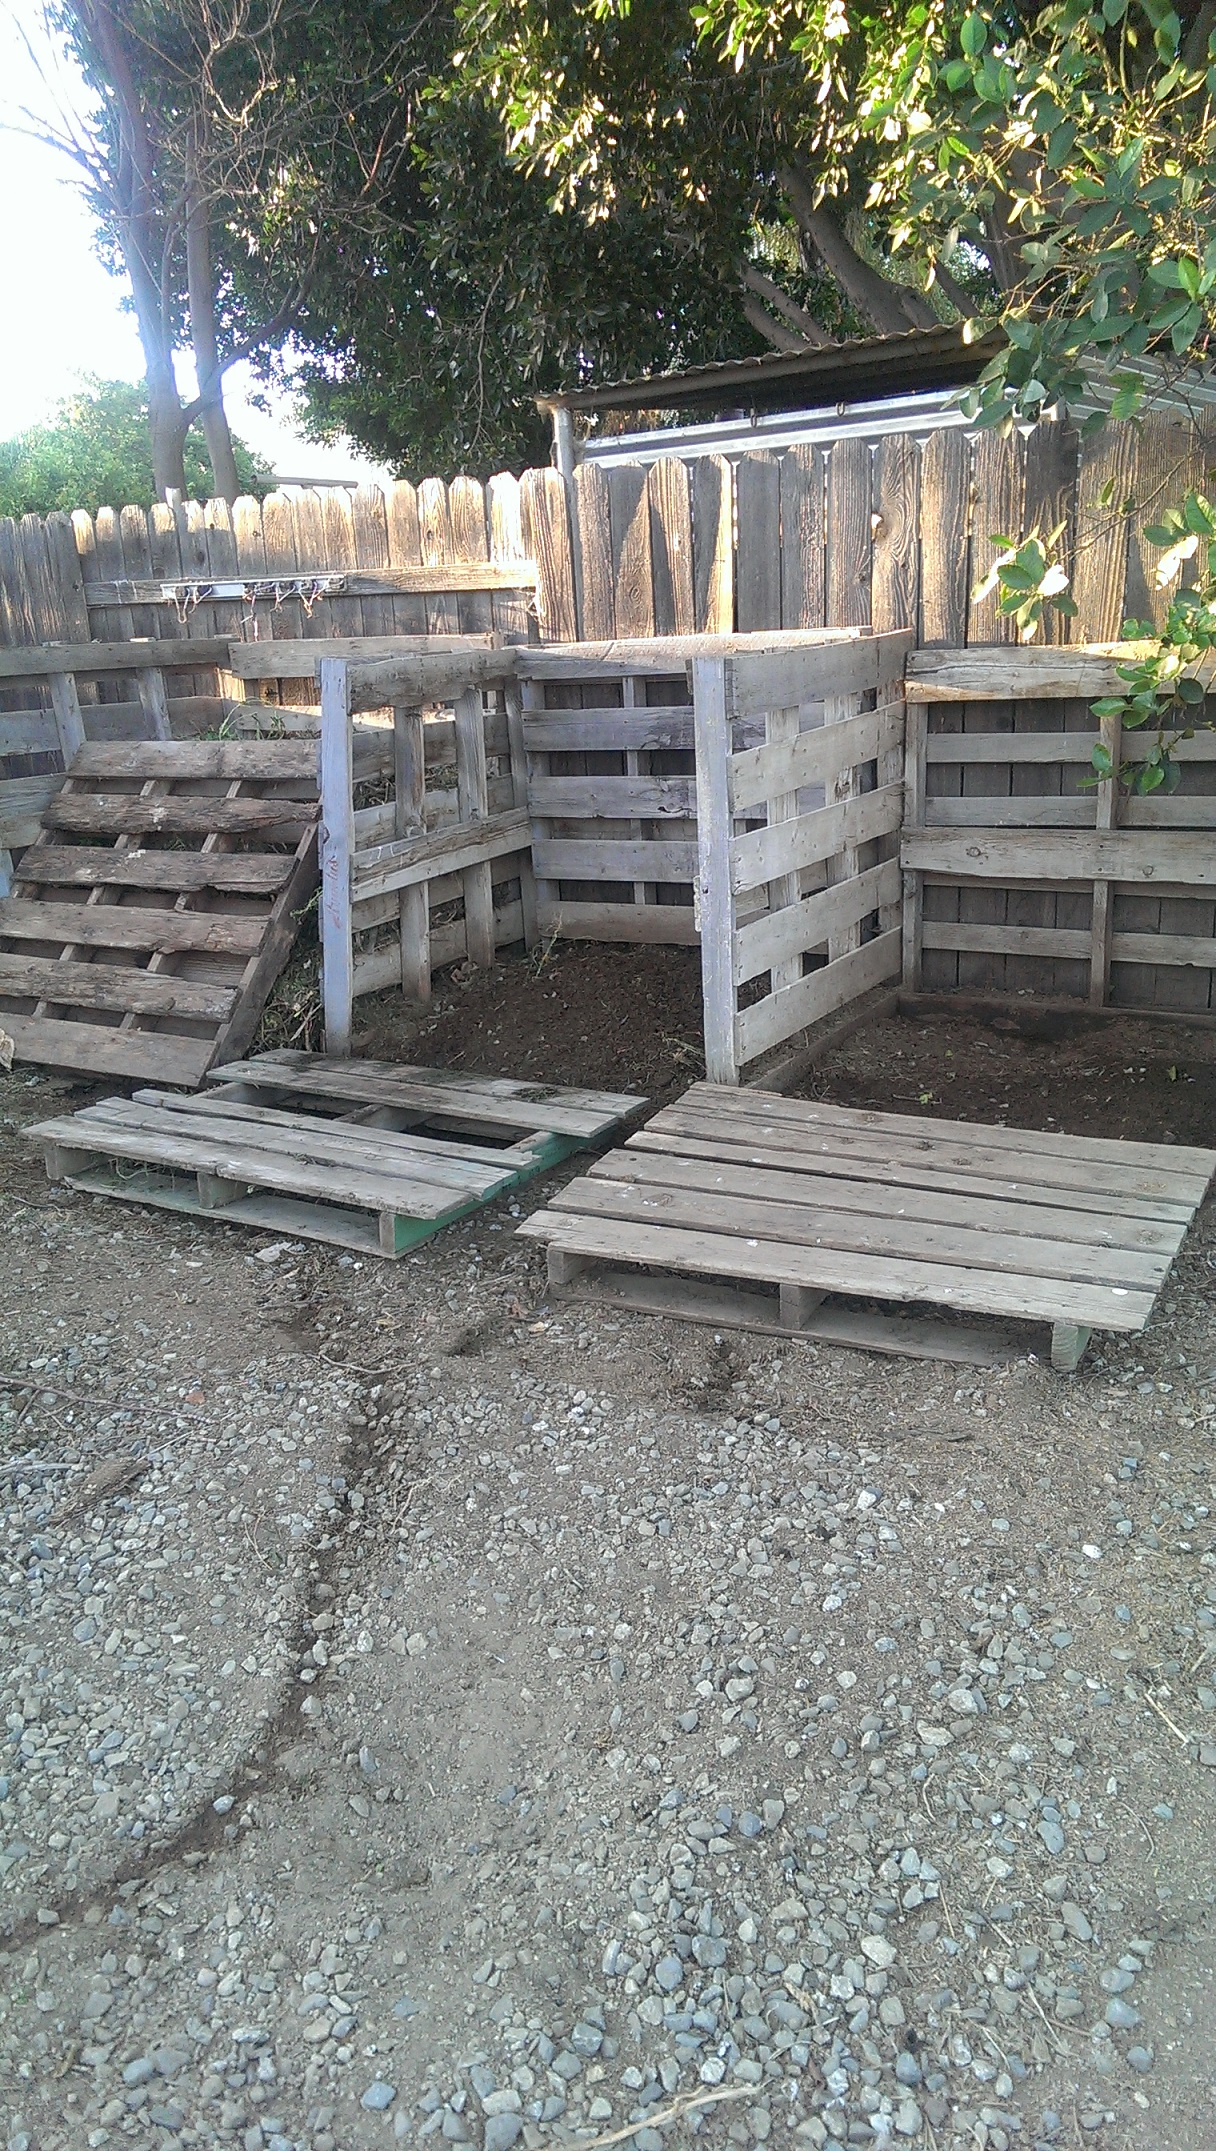 Compost Bins made from wooden palettes